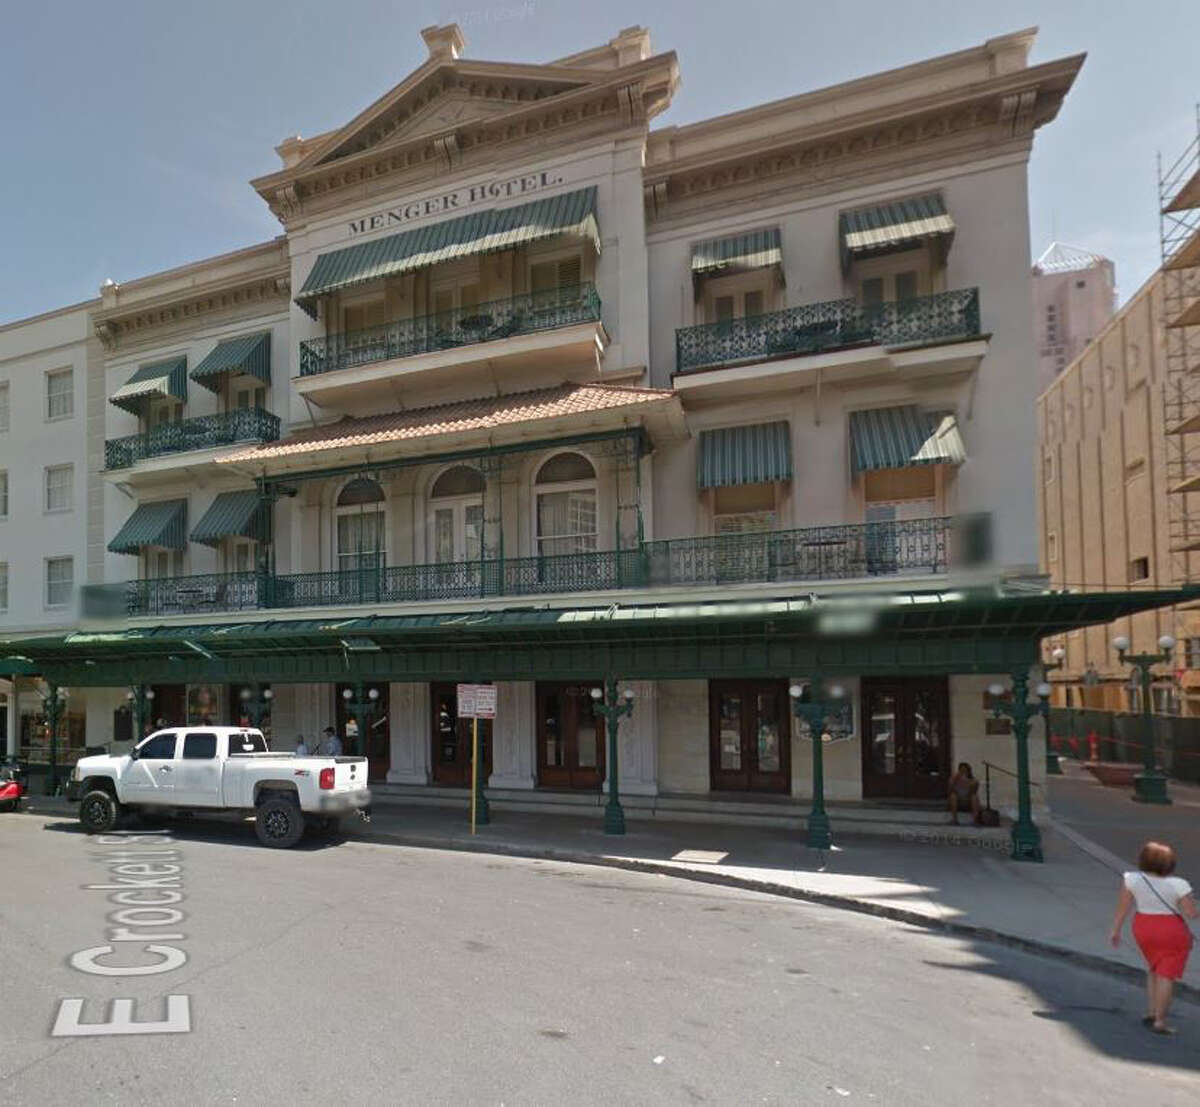 A view of the Menger Hotel today.